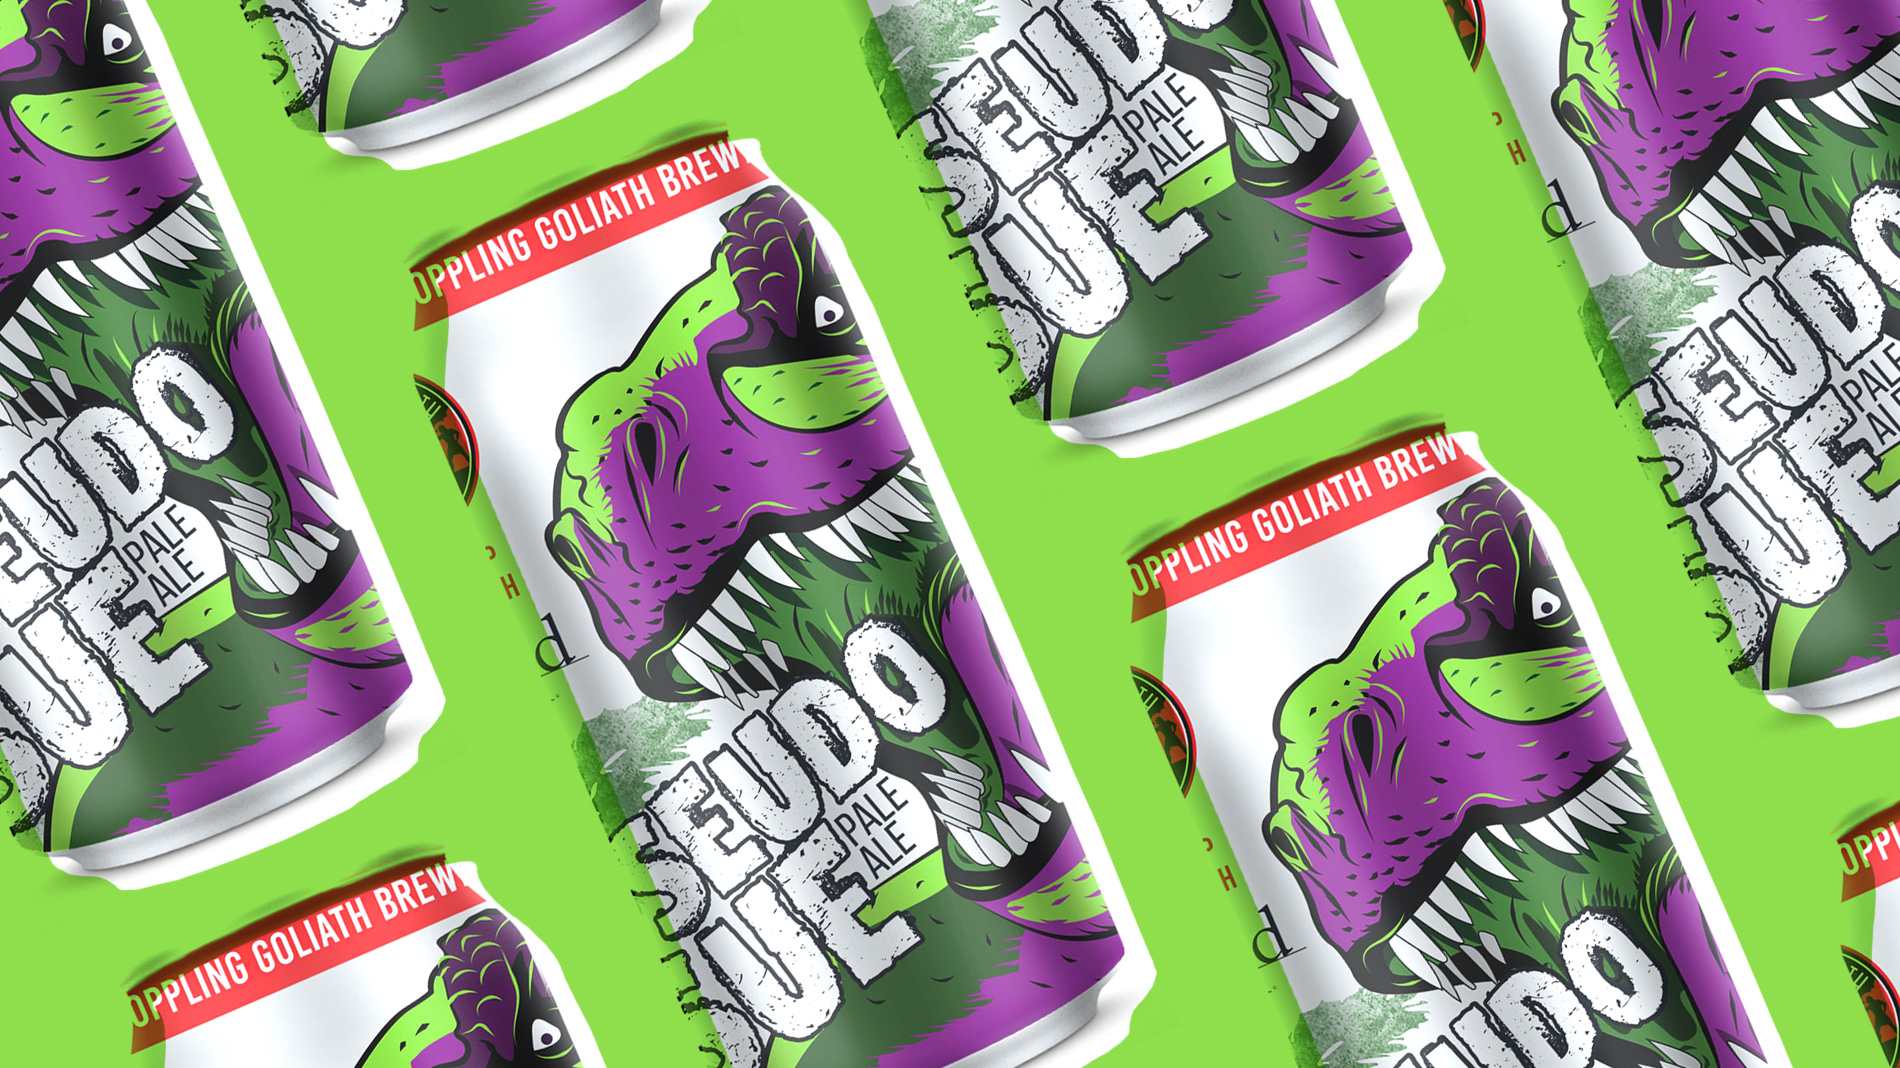 cans of toppling goliath's pseudo sue